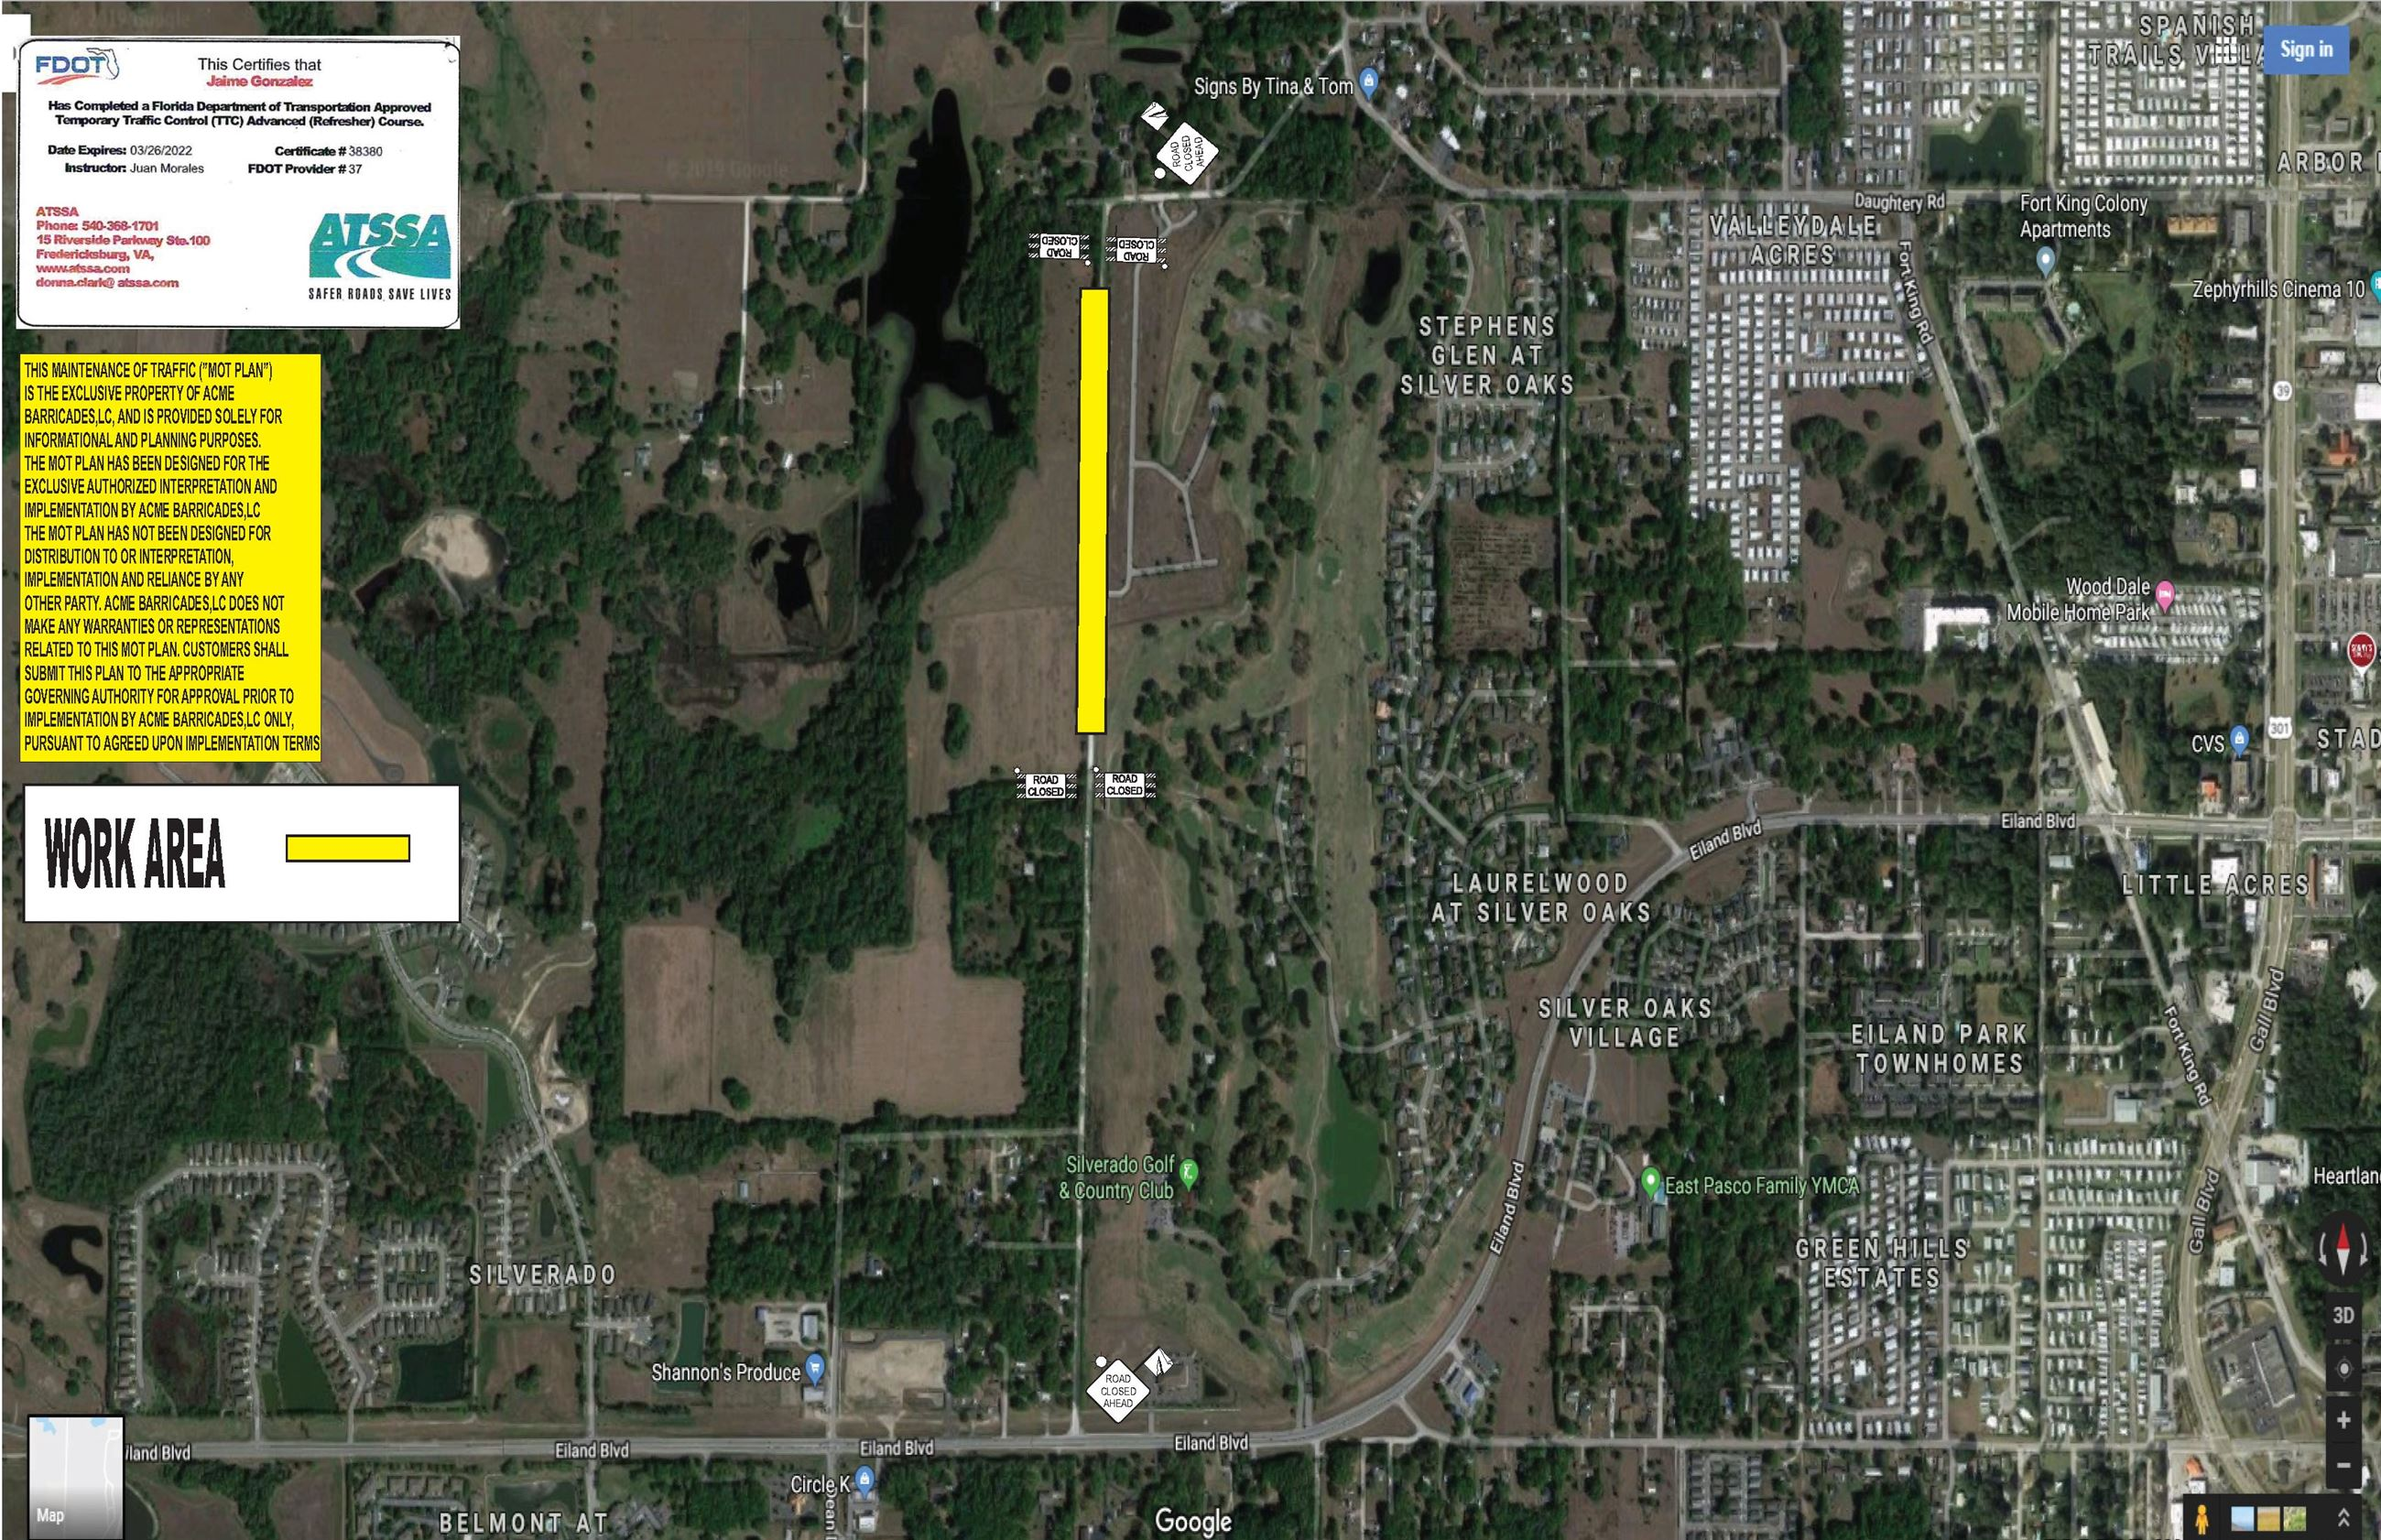 MOT Plan - Simons Road -Acme Map - Due to construction on Simons Road, there will be road closures a